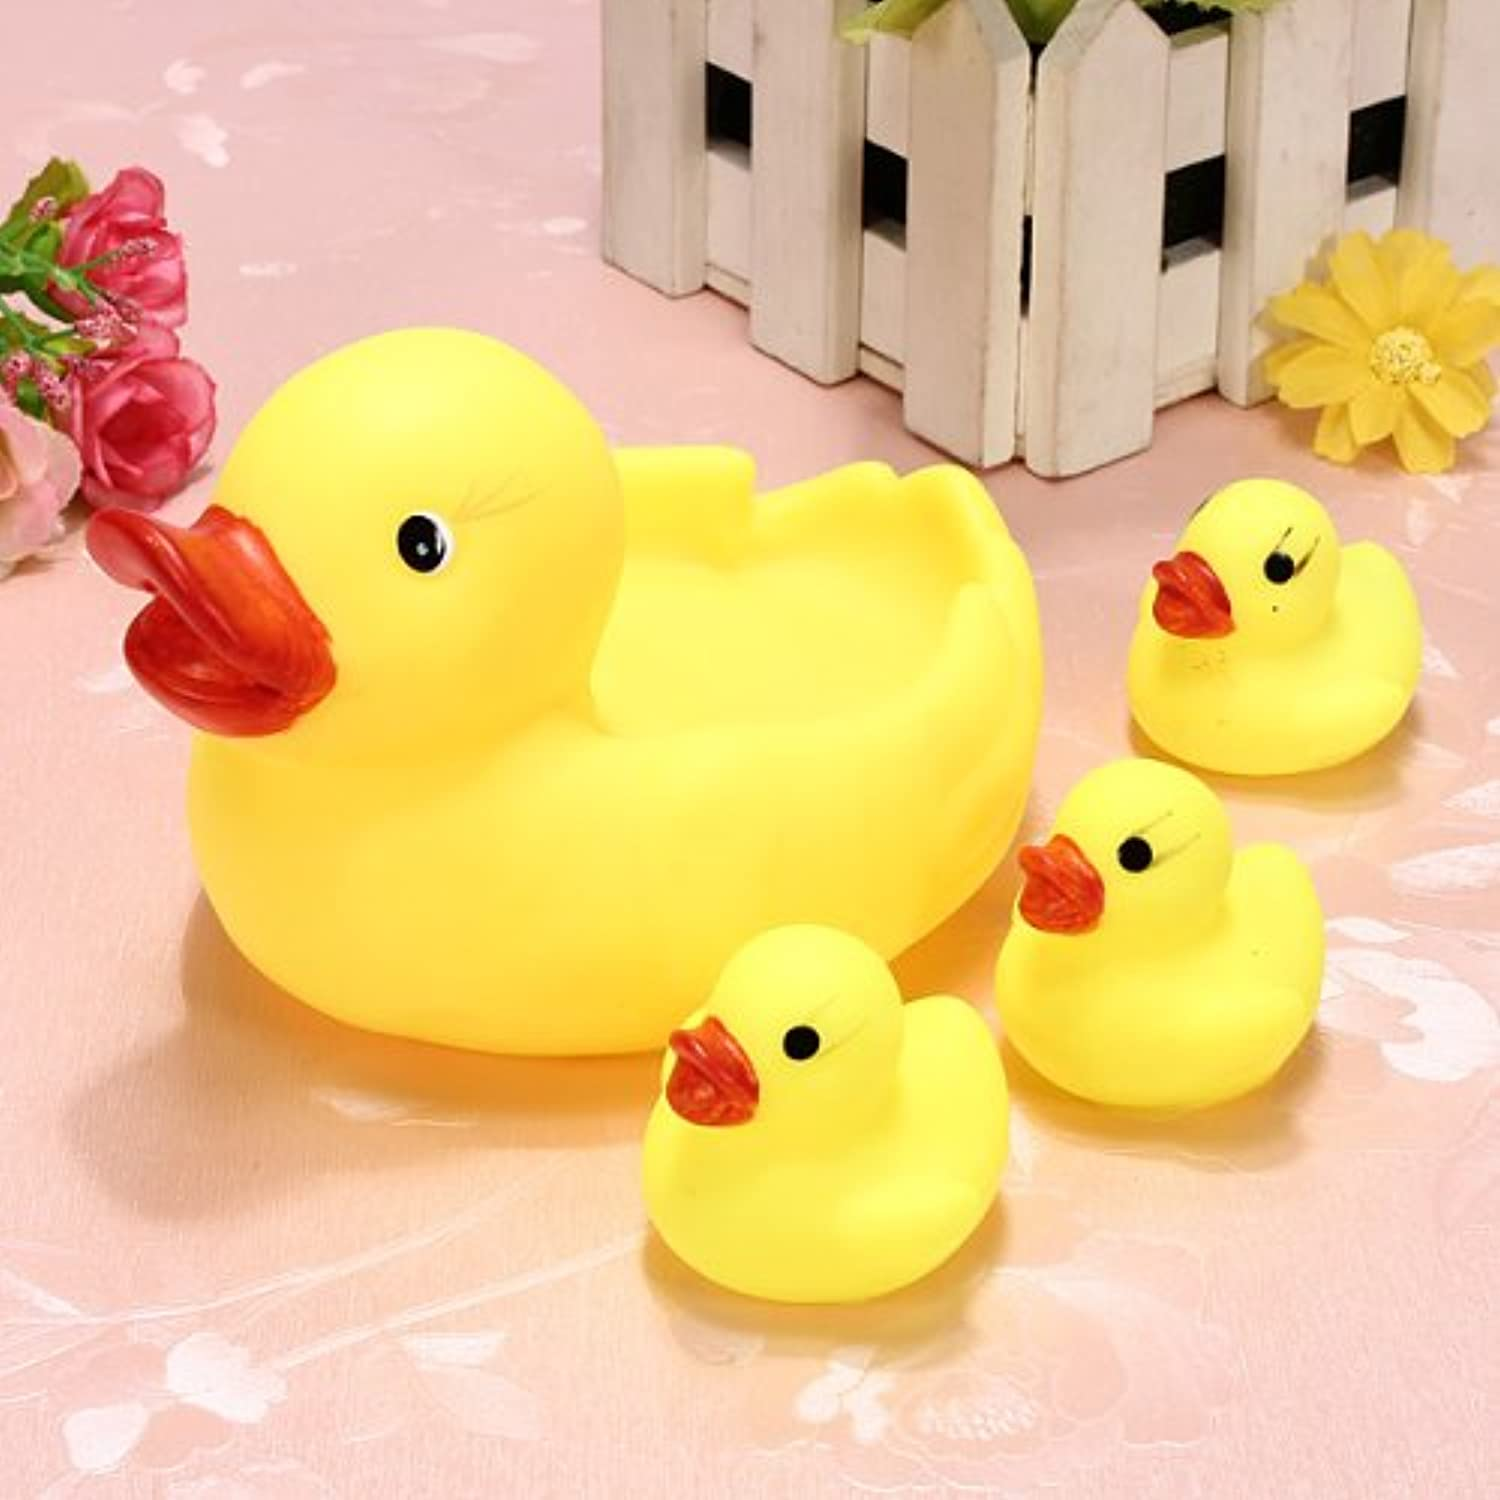 Rainbowkids a set of 4 Pcs new arrival child Baby Bath Toys ,Water Floating Squeaky Yellow Rubber Ducks,speical gifts for child&baby. by rainbowkids